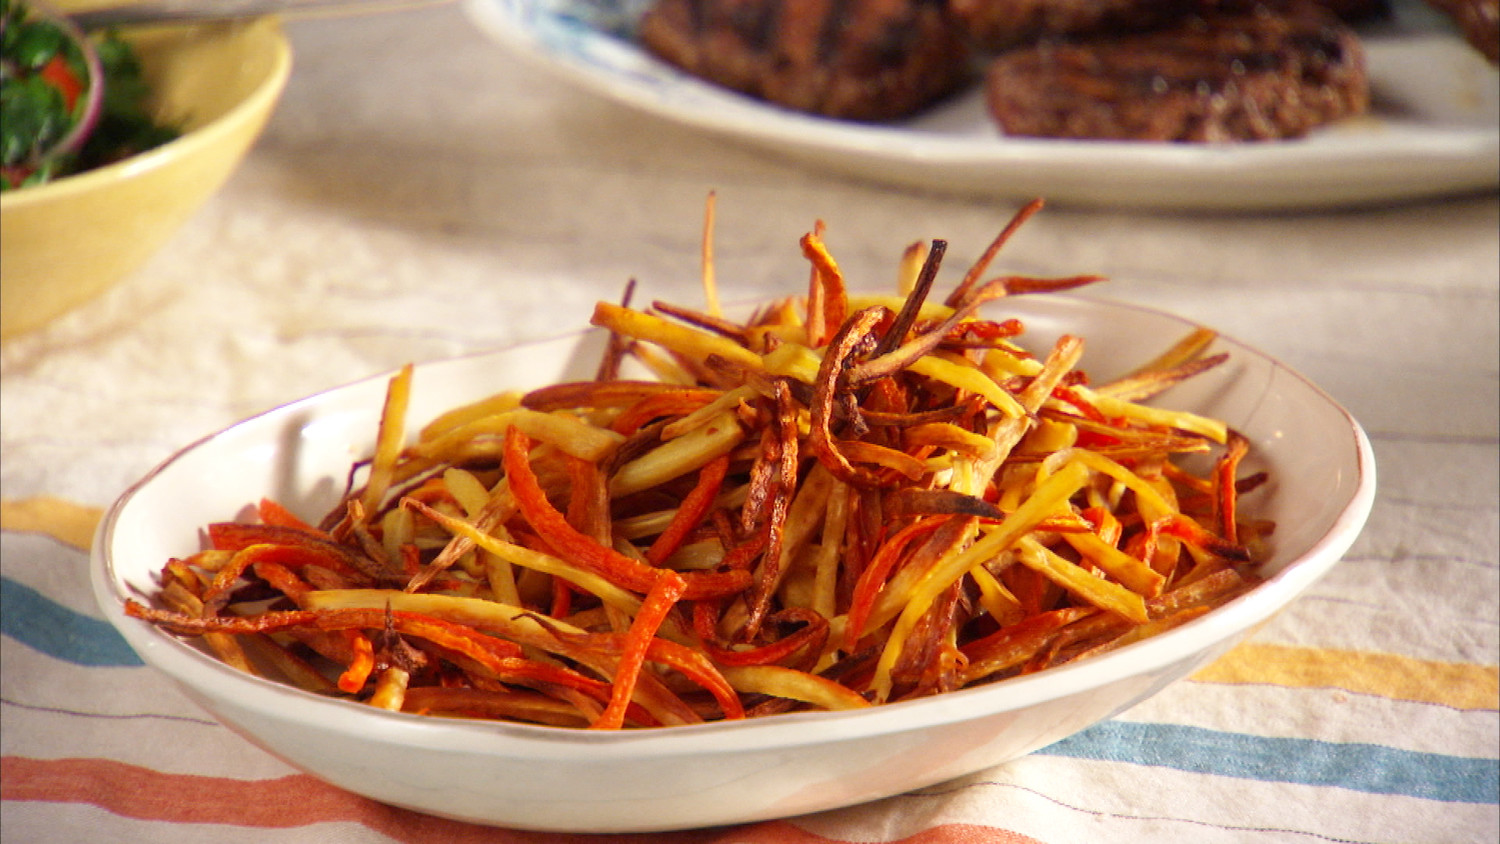 Carrot And Parsnip Fries Recipe Amp Video Martha Stewart